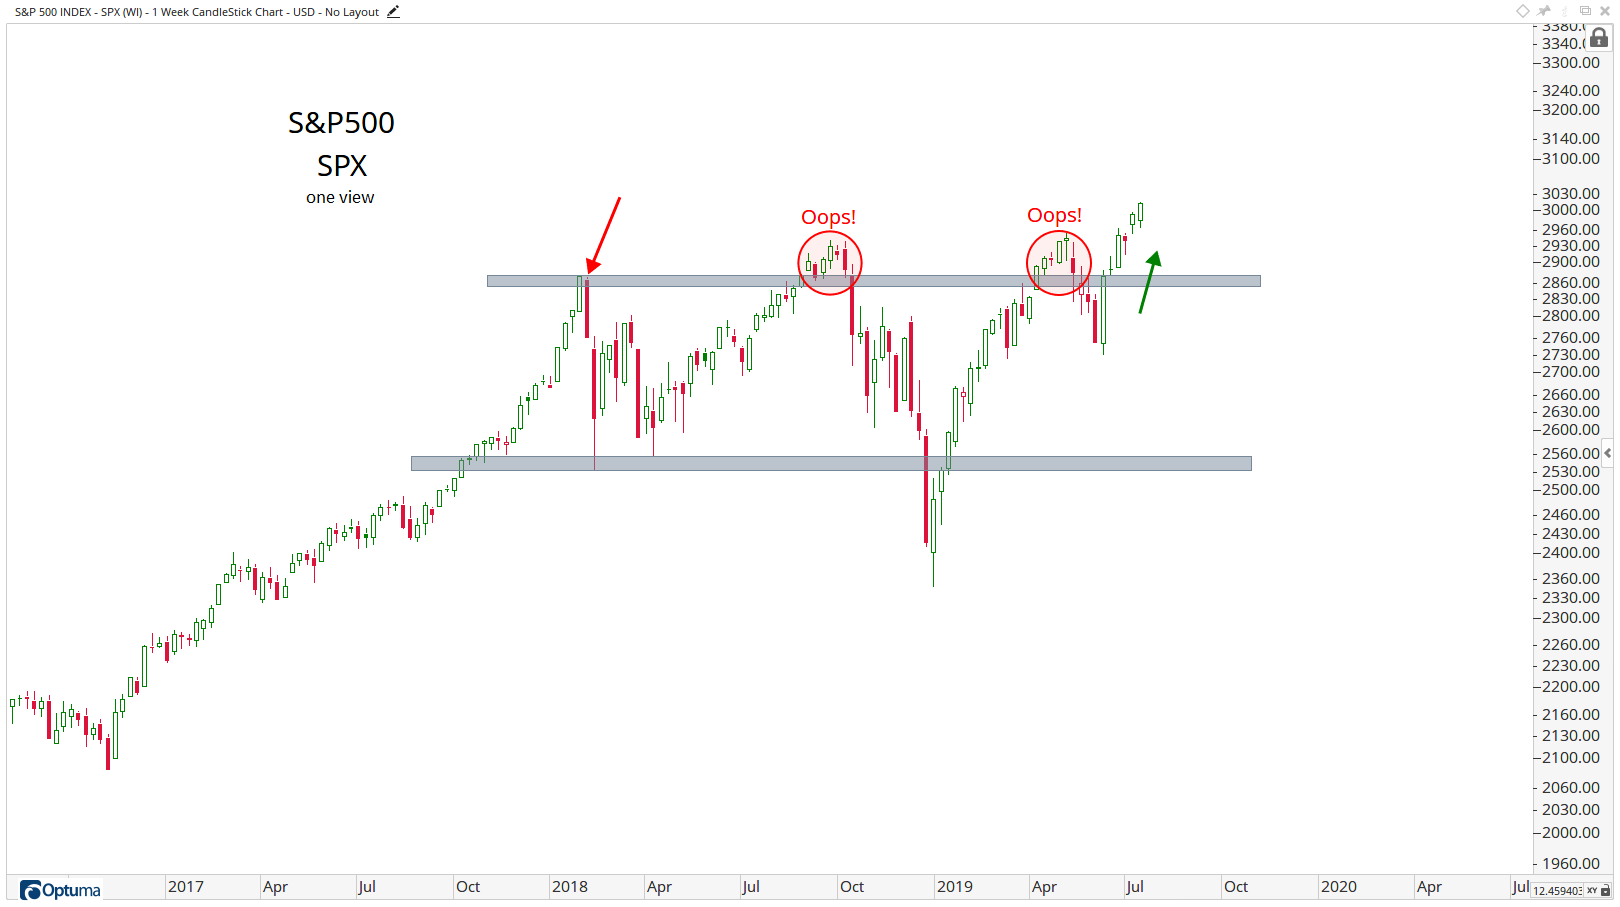 New Highs Is The Common Theme All Star Charts